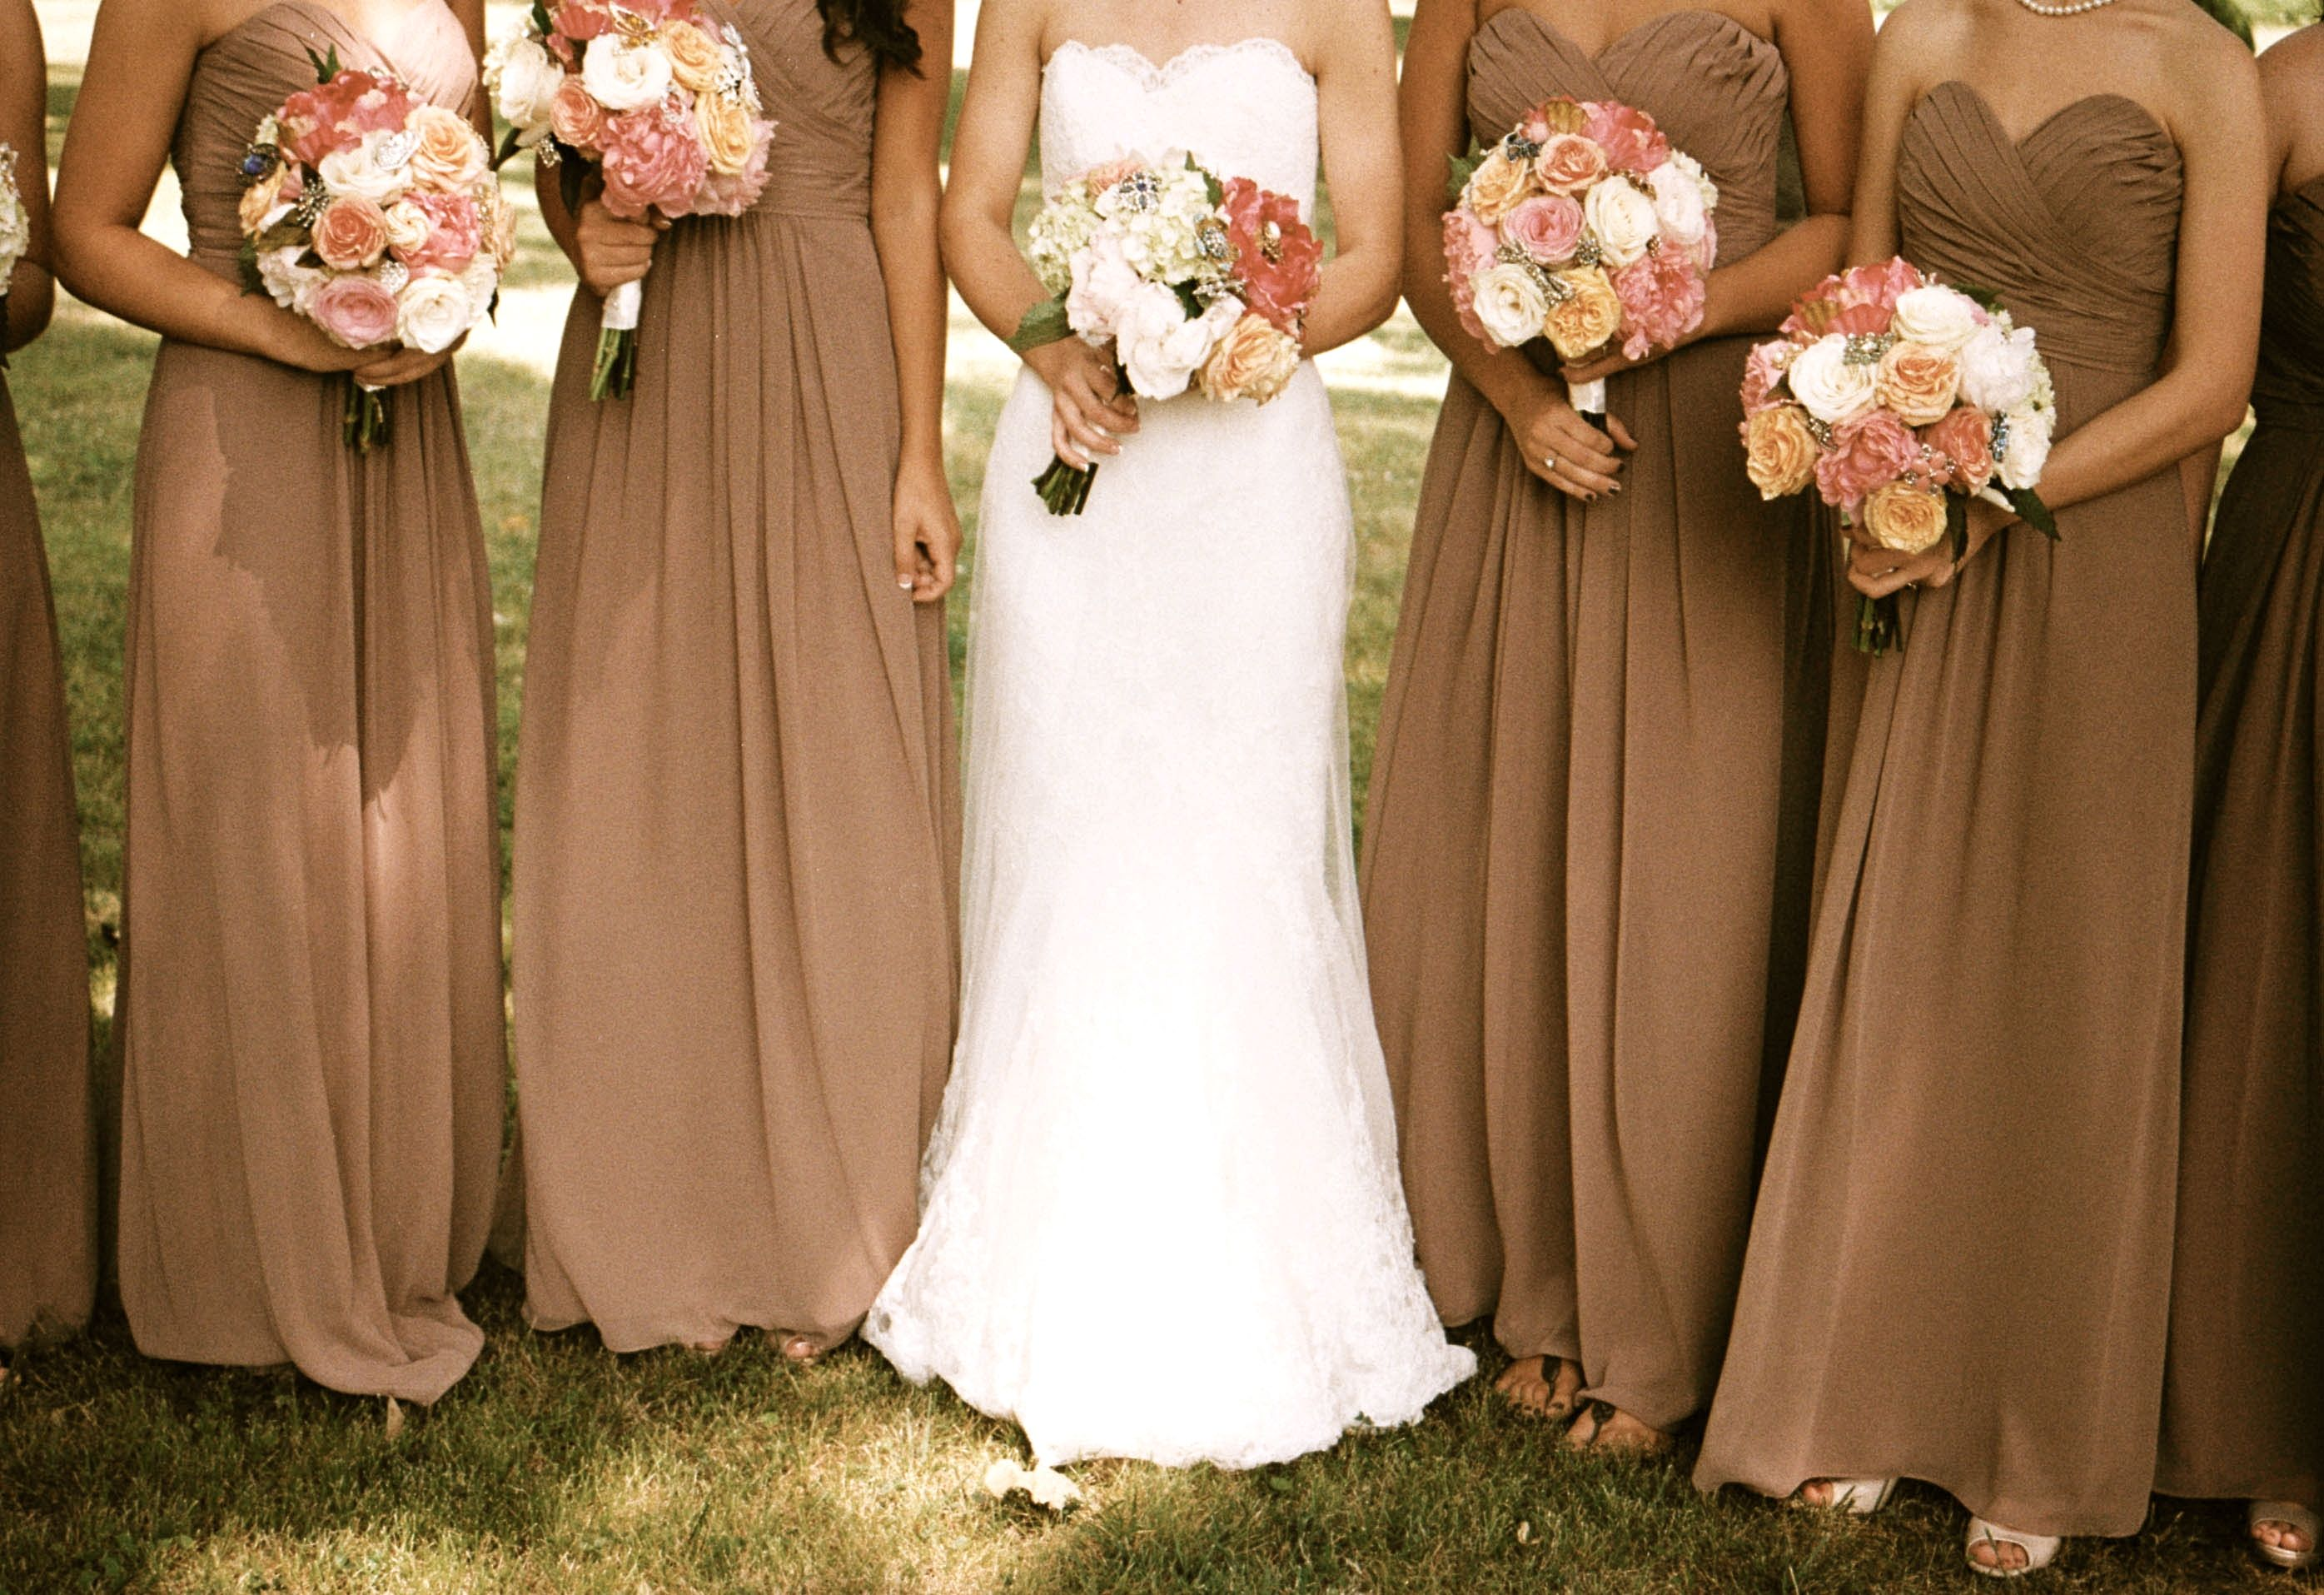 Mocha bridesmaid dresses antique lace pink peonies for October wedding bridesmaid dresses